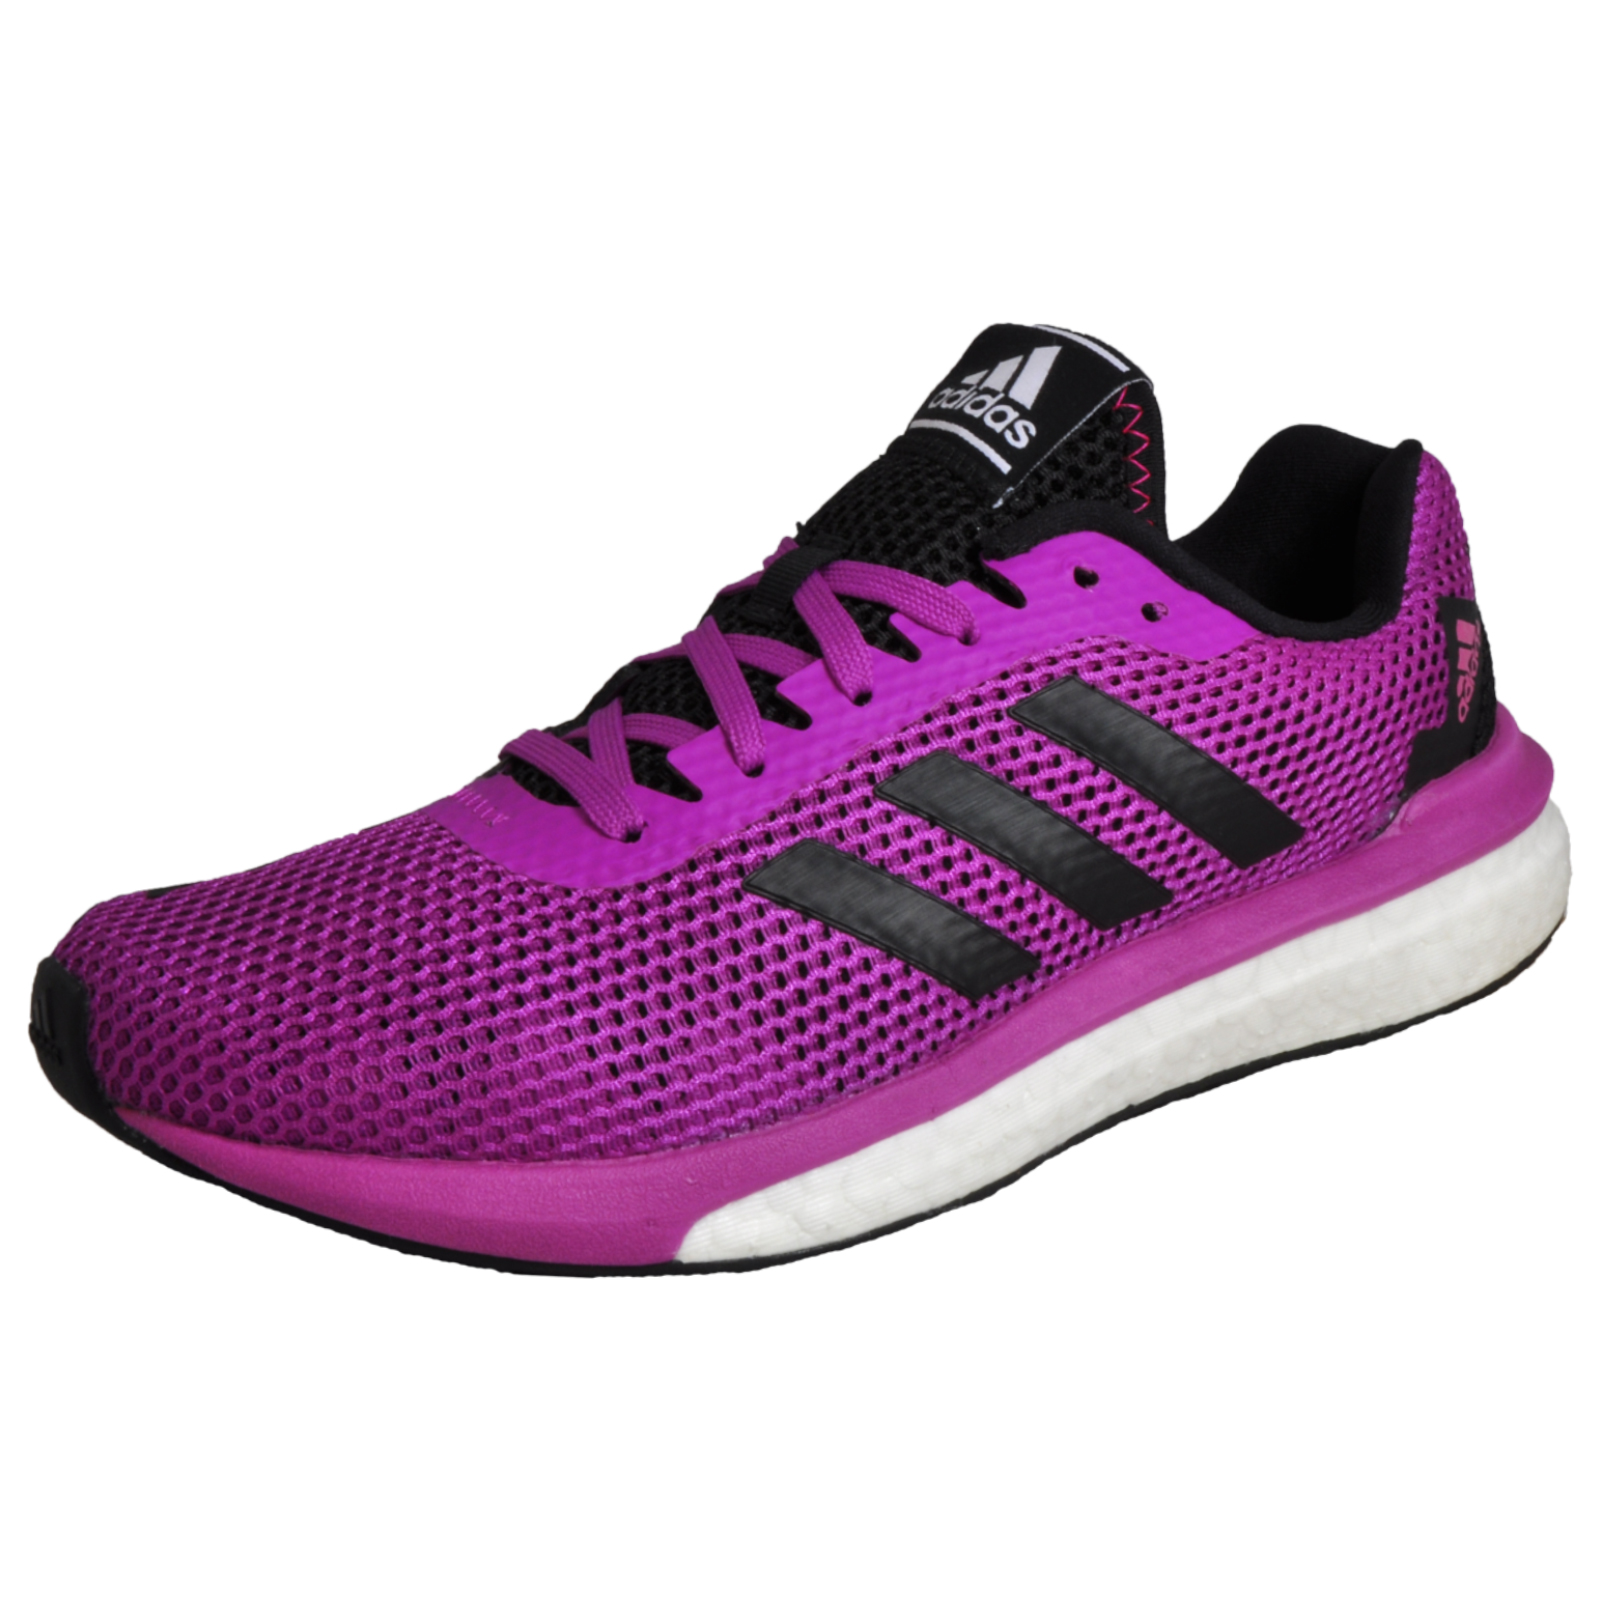 8ece8a52bbc1f Details about Adidas Vengeful Boost Women s Running Shoes Fitness Gym  Trainers Purple